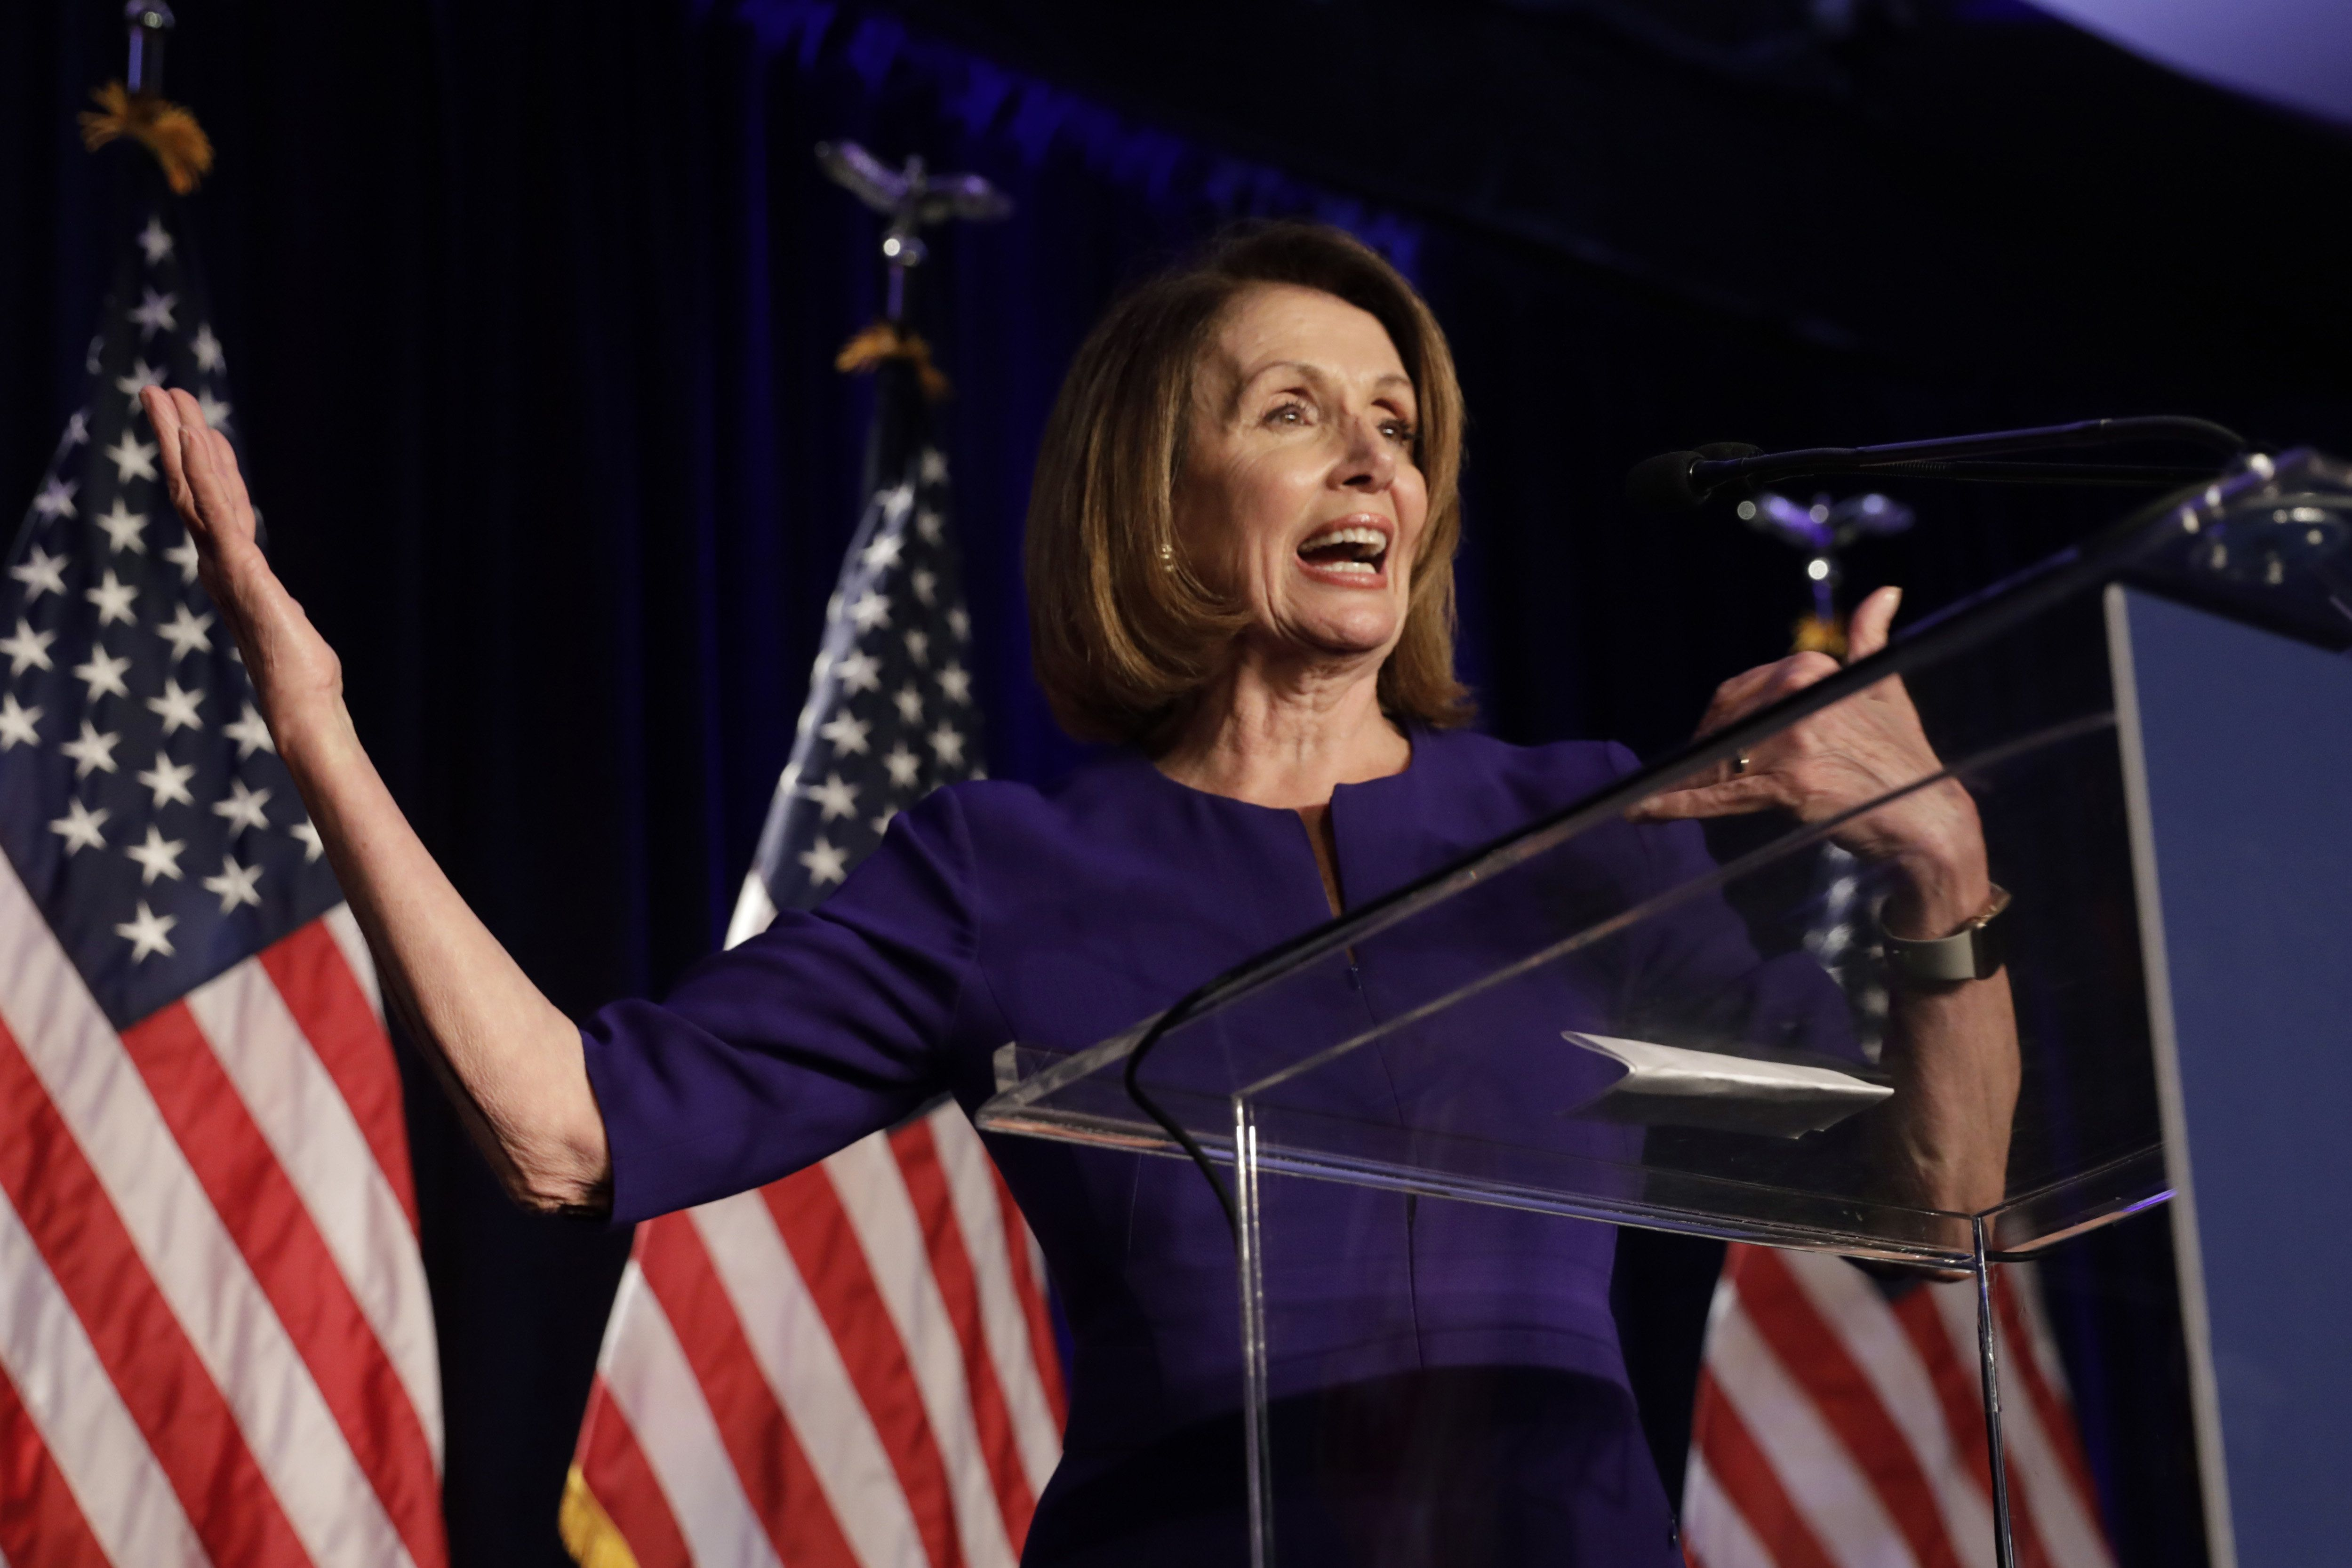 House Minority Leader Nancy Pelosi, a Democrat from California, speaks during a House Democratic election night event in Washington, D.C., U.S., on Tuesday, Nov. 6, 2018. Democrats are poised to reclaim the U.S. House, riding a wave of voter anger and discontent with President Donald Trump to a victory that would dramatically alter his next two years in office and make a deeply divided nation even more difficult to govern. Photographer: Yuri Gripas/Bloomberg via Getty Images